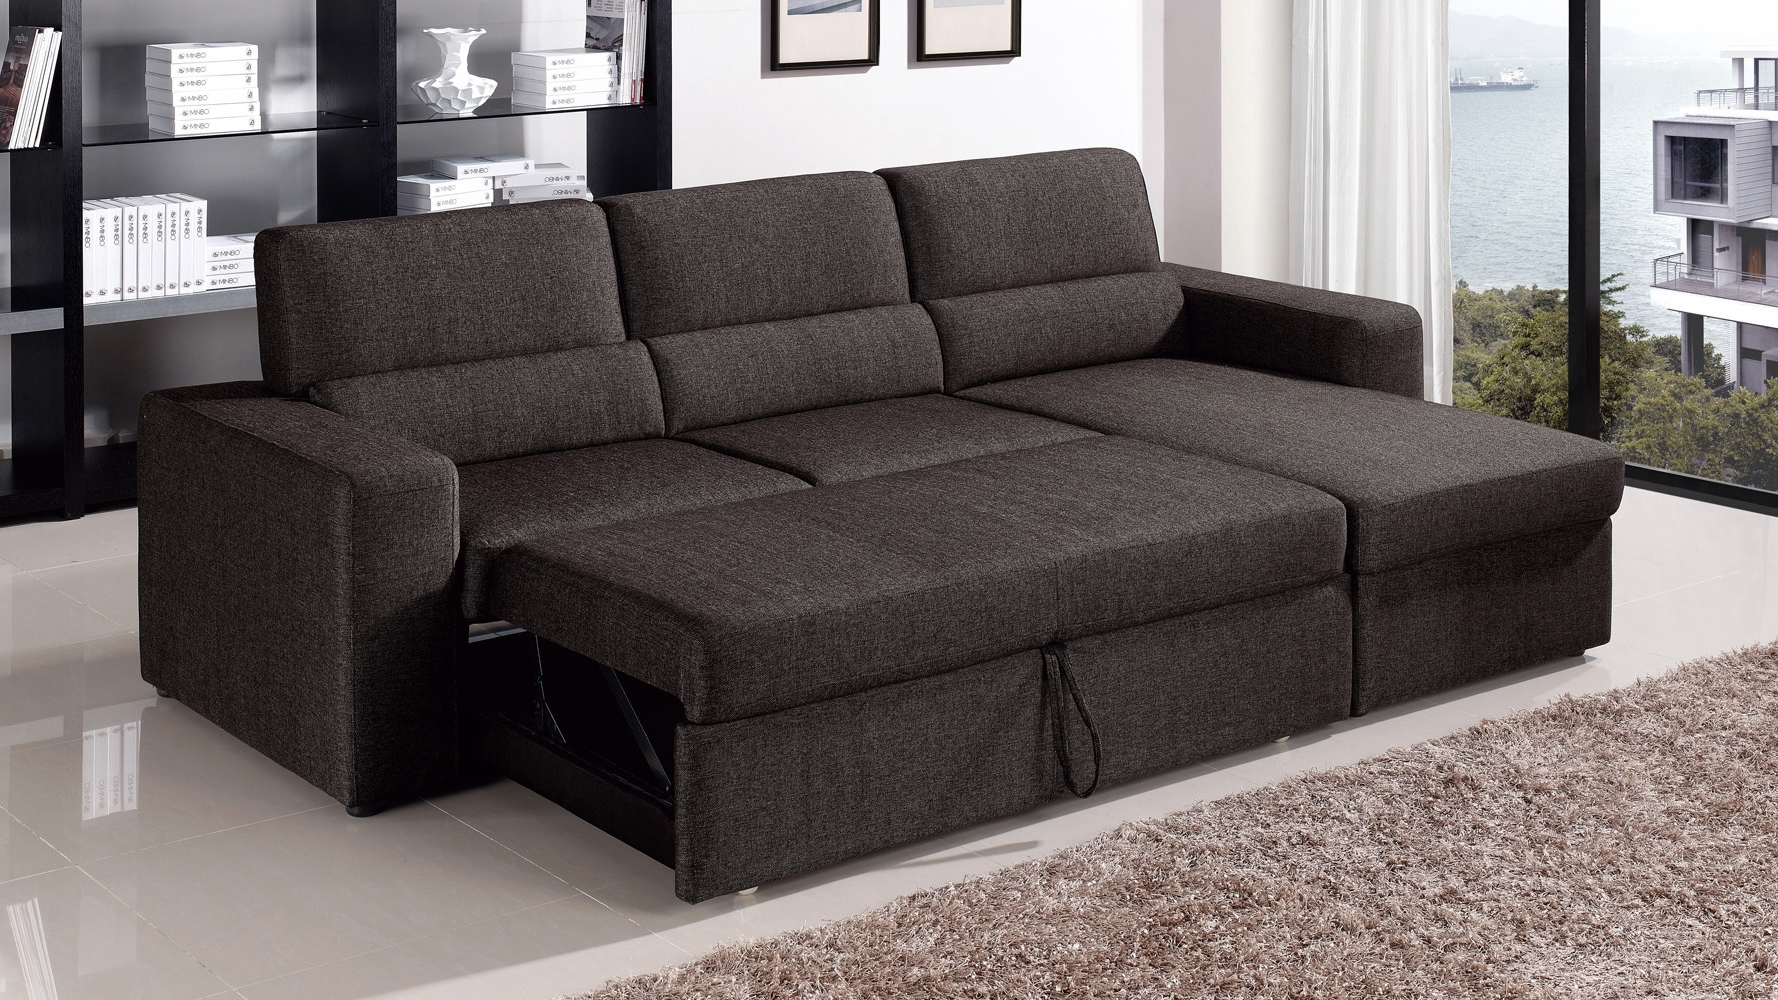 Most Recently Released Sectional Sleeper Sofas With Chaise Pertaining To Black/brown Clubber Sleeper Sectional Sofa (View 10 of 15)